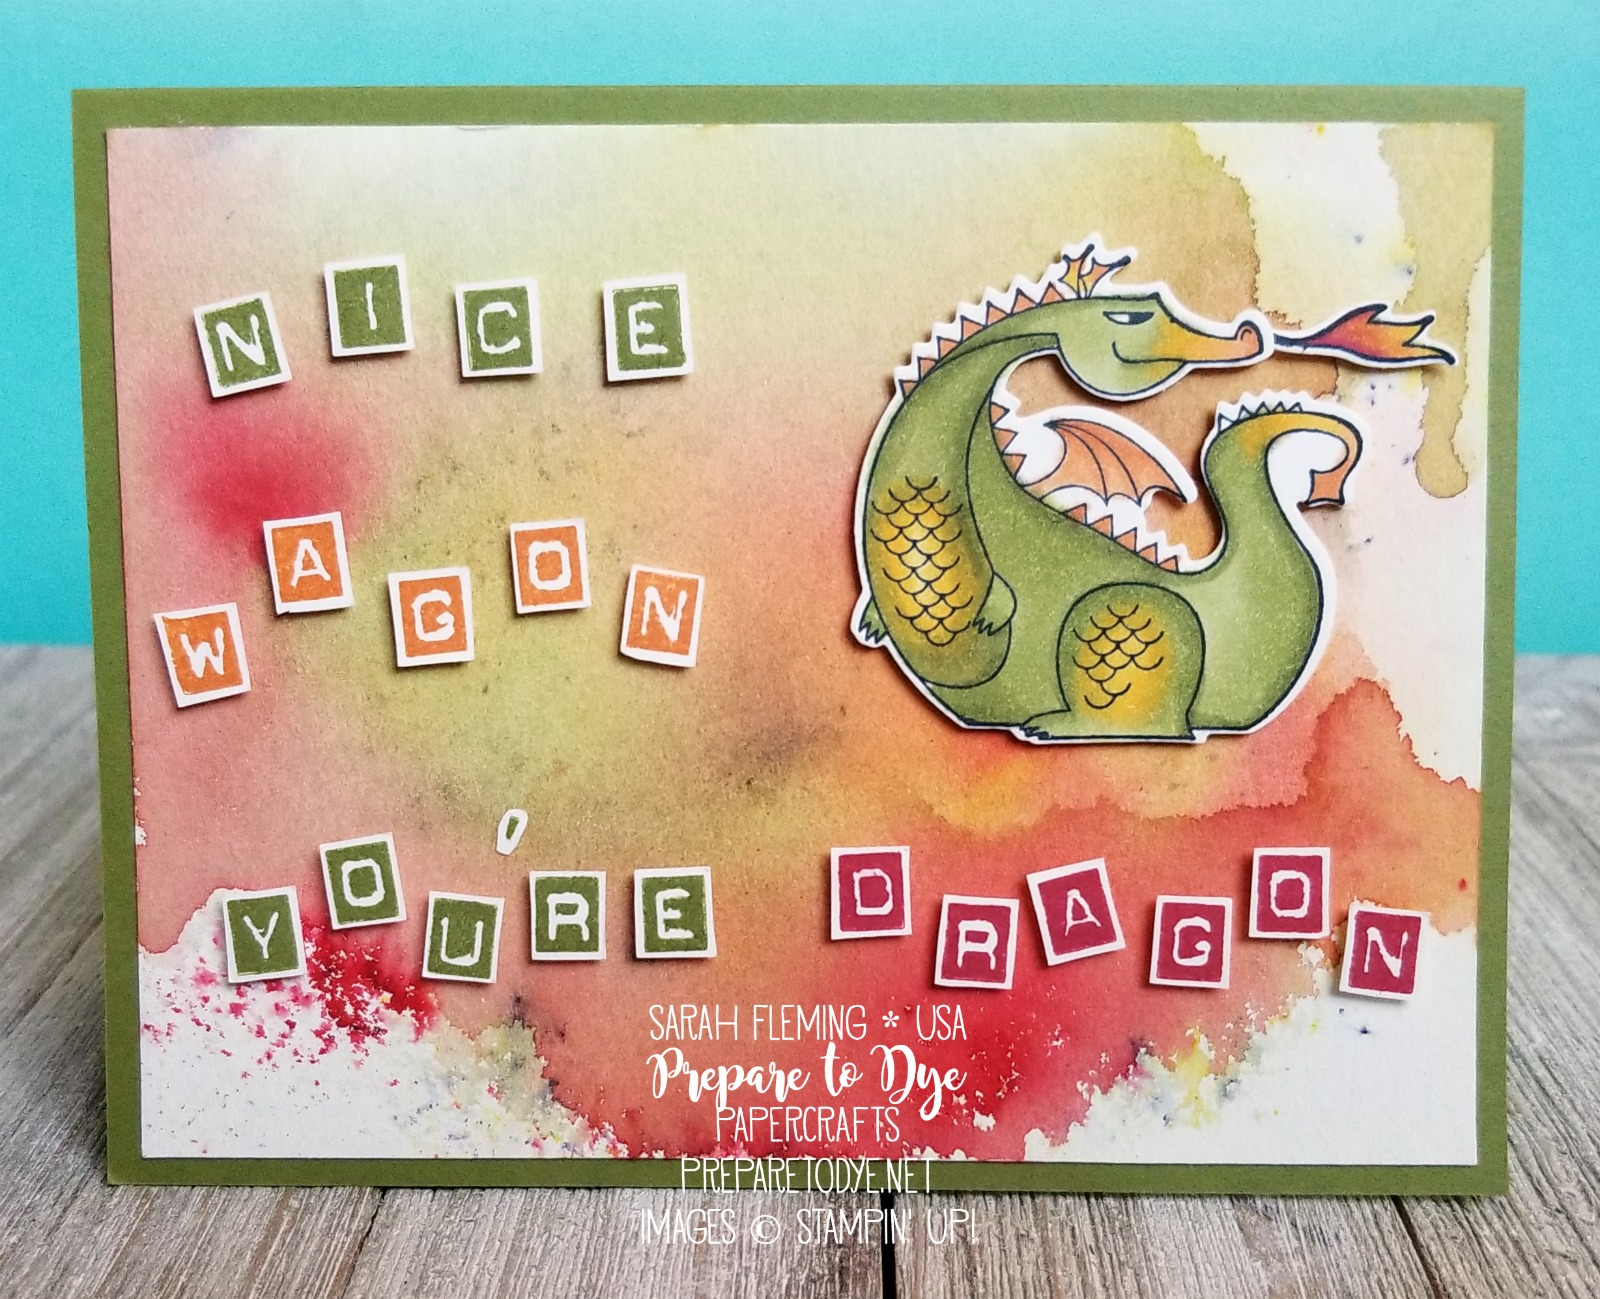 Stampin' Up! handmade punny card - Magical Day stamp set, Brusho background, fun card for friends - dragons - Sarah Fleming - Prepare to Dye Papercrafts